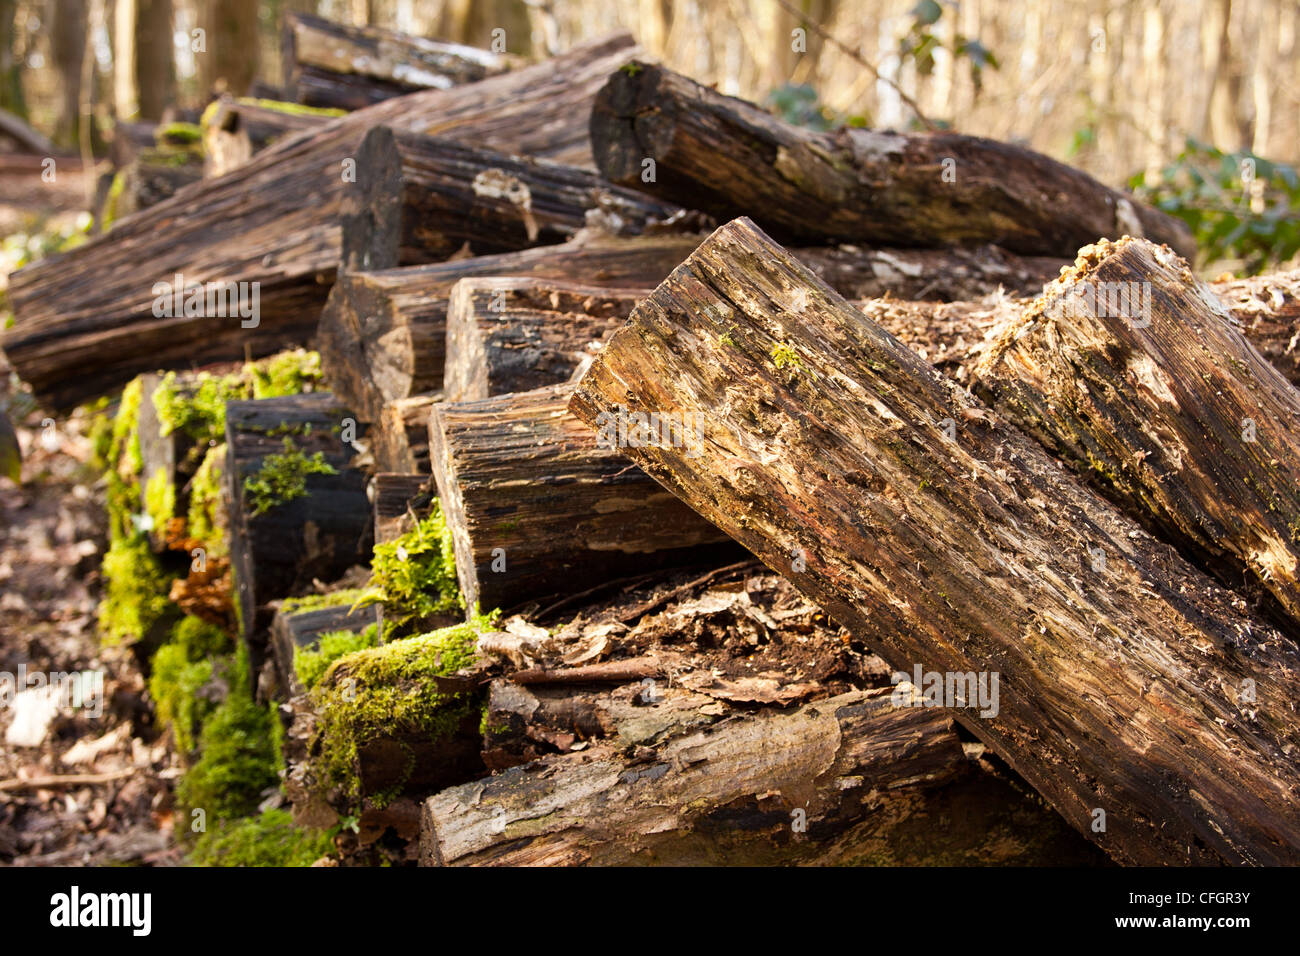 decaying wood pile stockfotos decaying wood pile bilder alamy. Black Bedroom Furniture Sets. Home Design Ideas